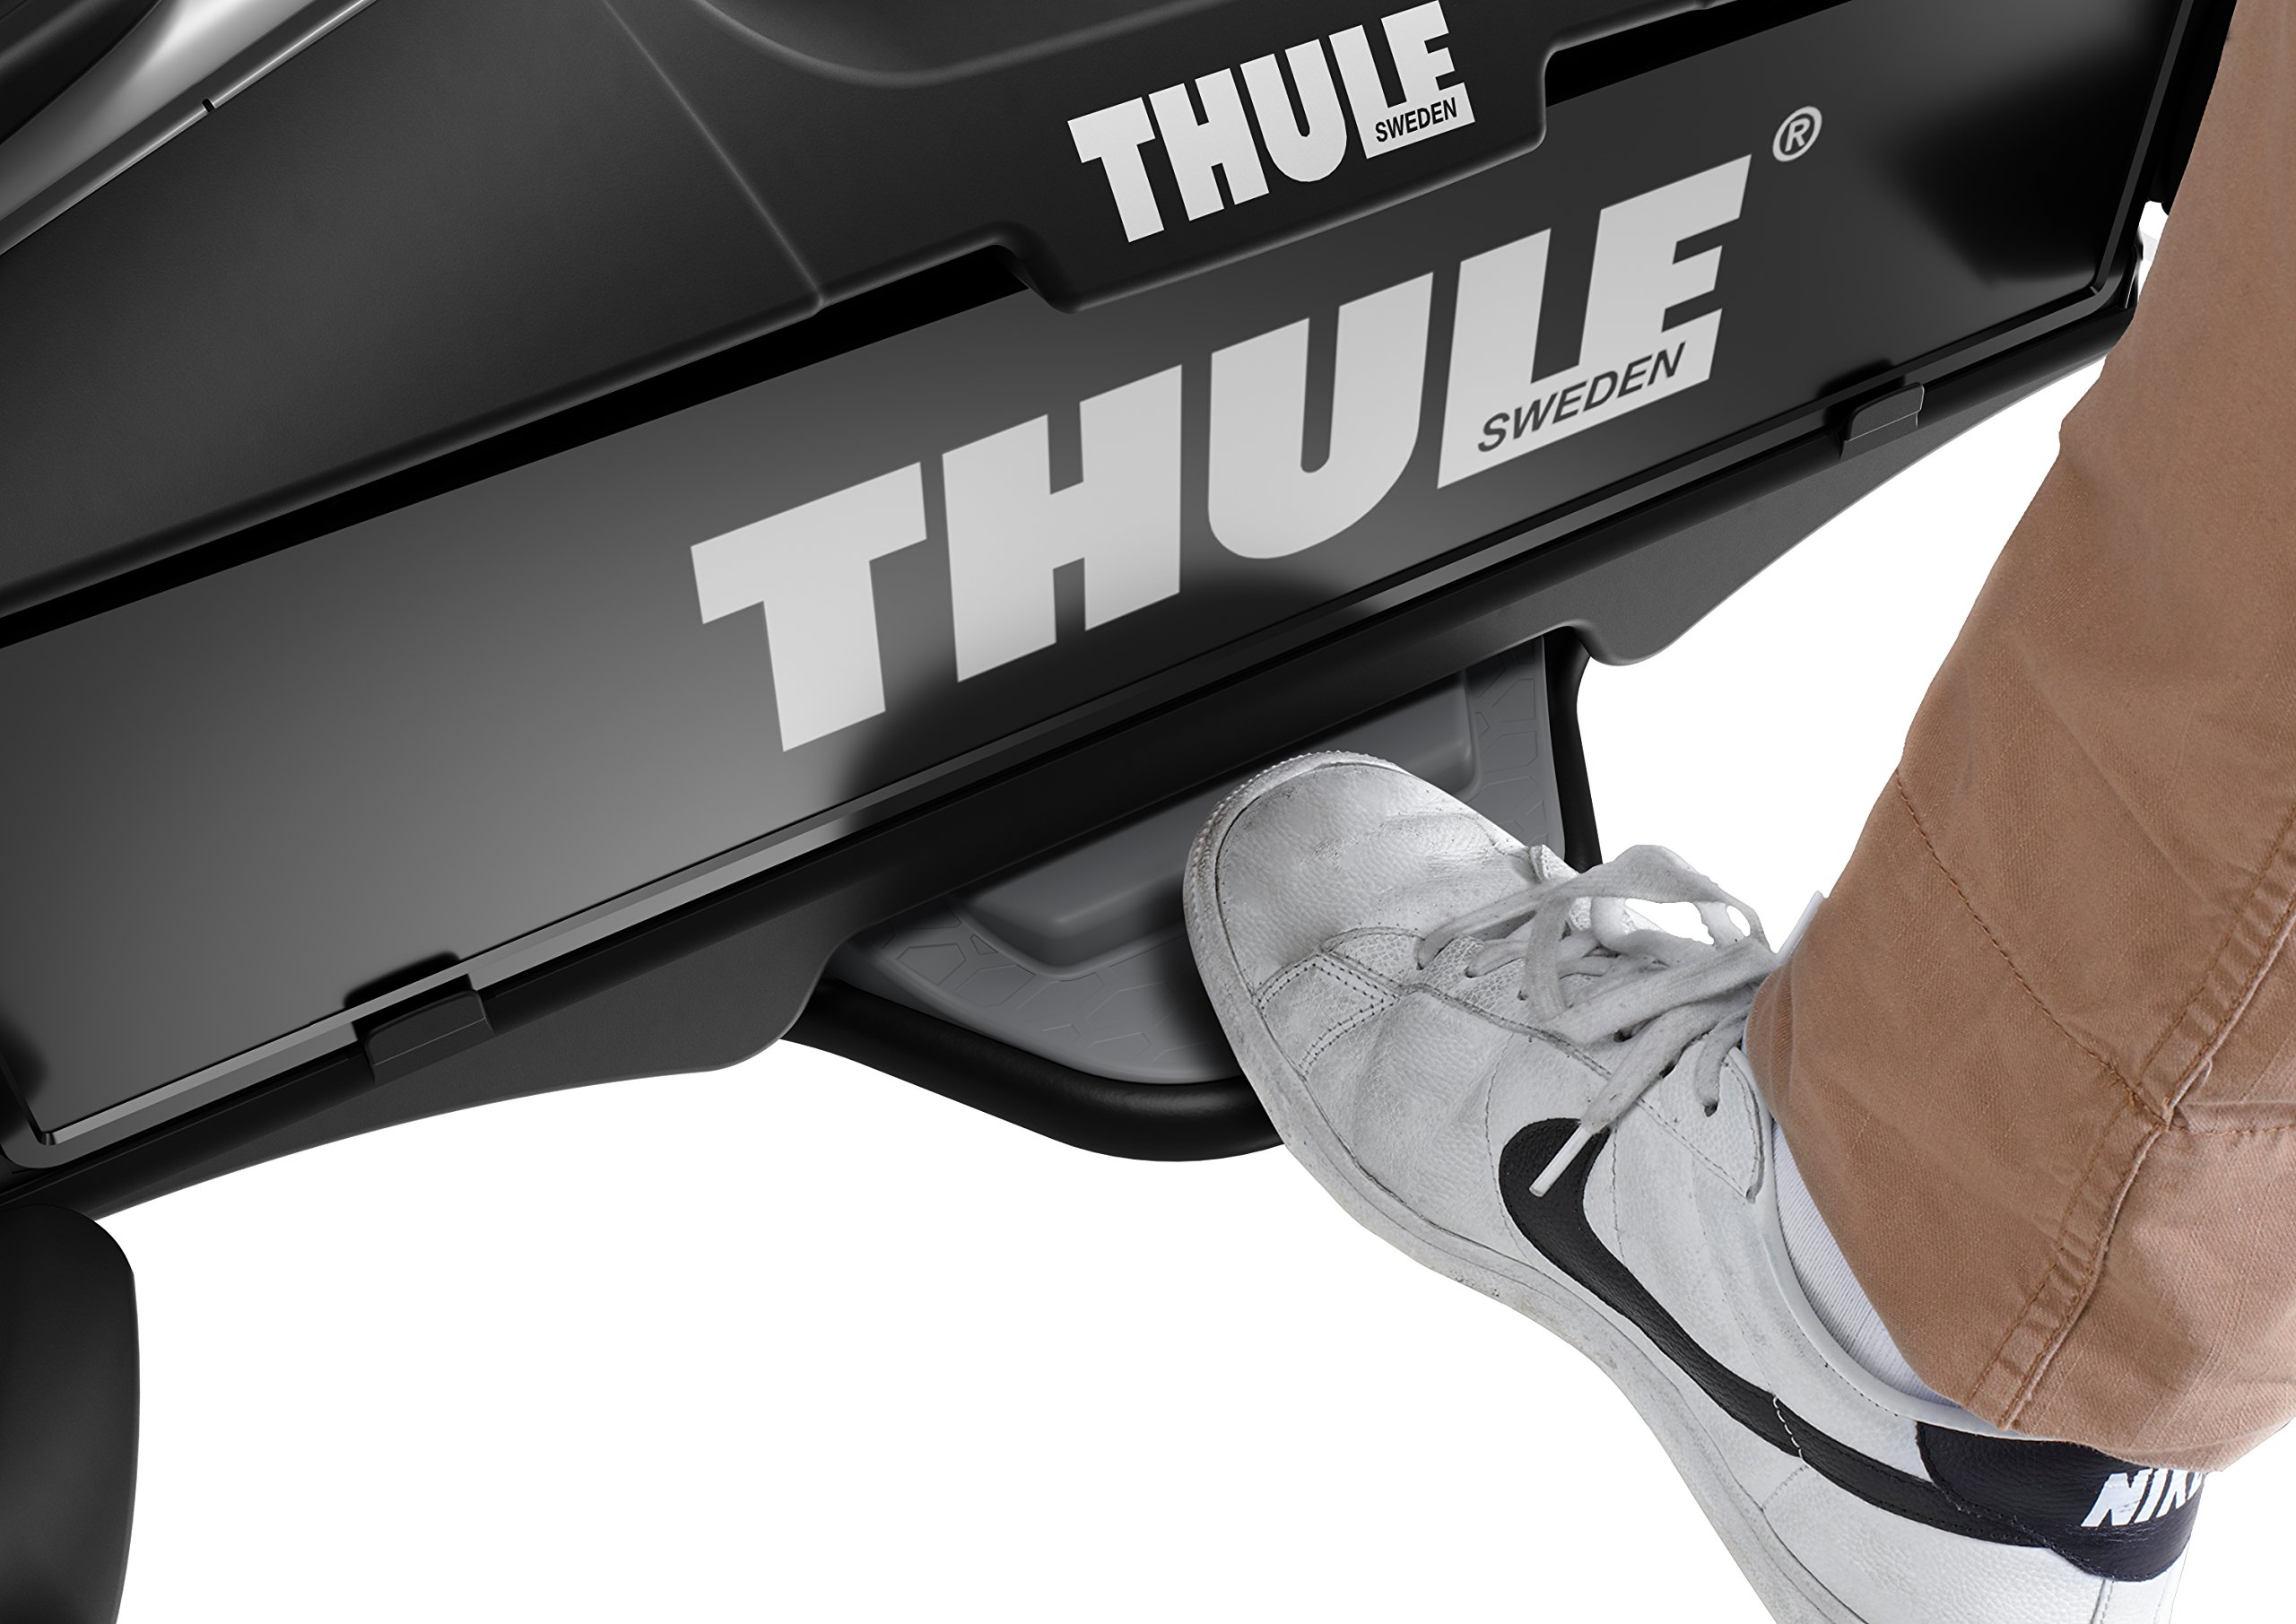 Thule 925001,Velo Compact 925, 2Bike, Towball Carrier, 7 pin 6